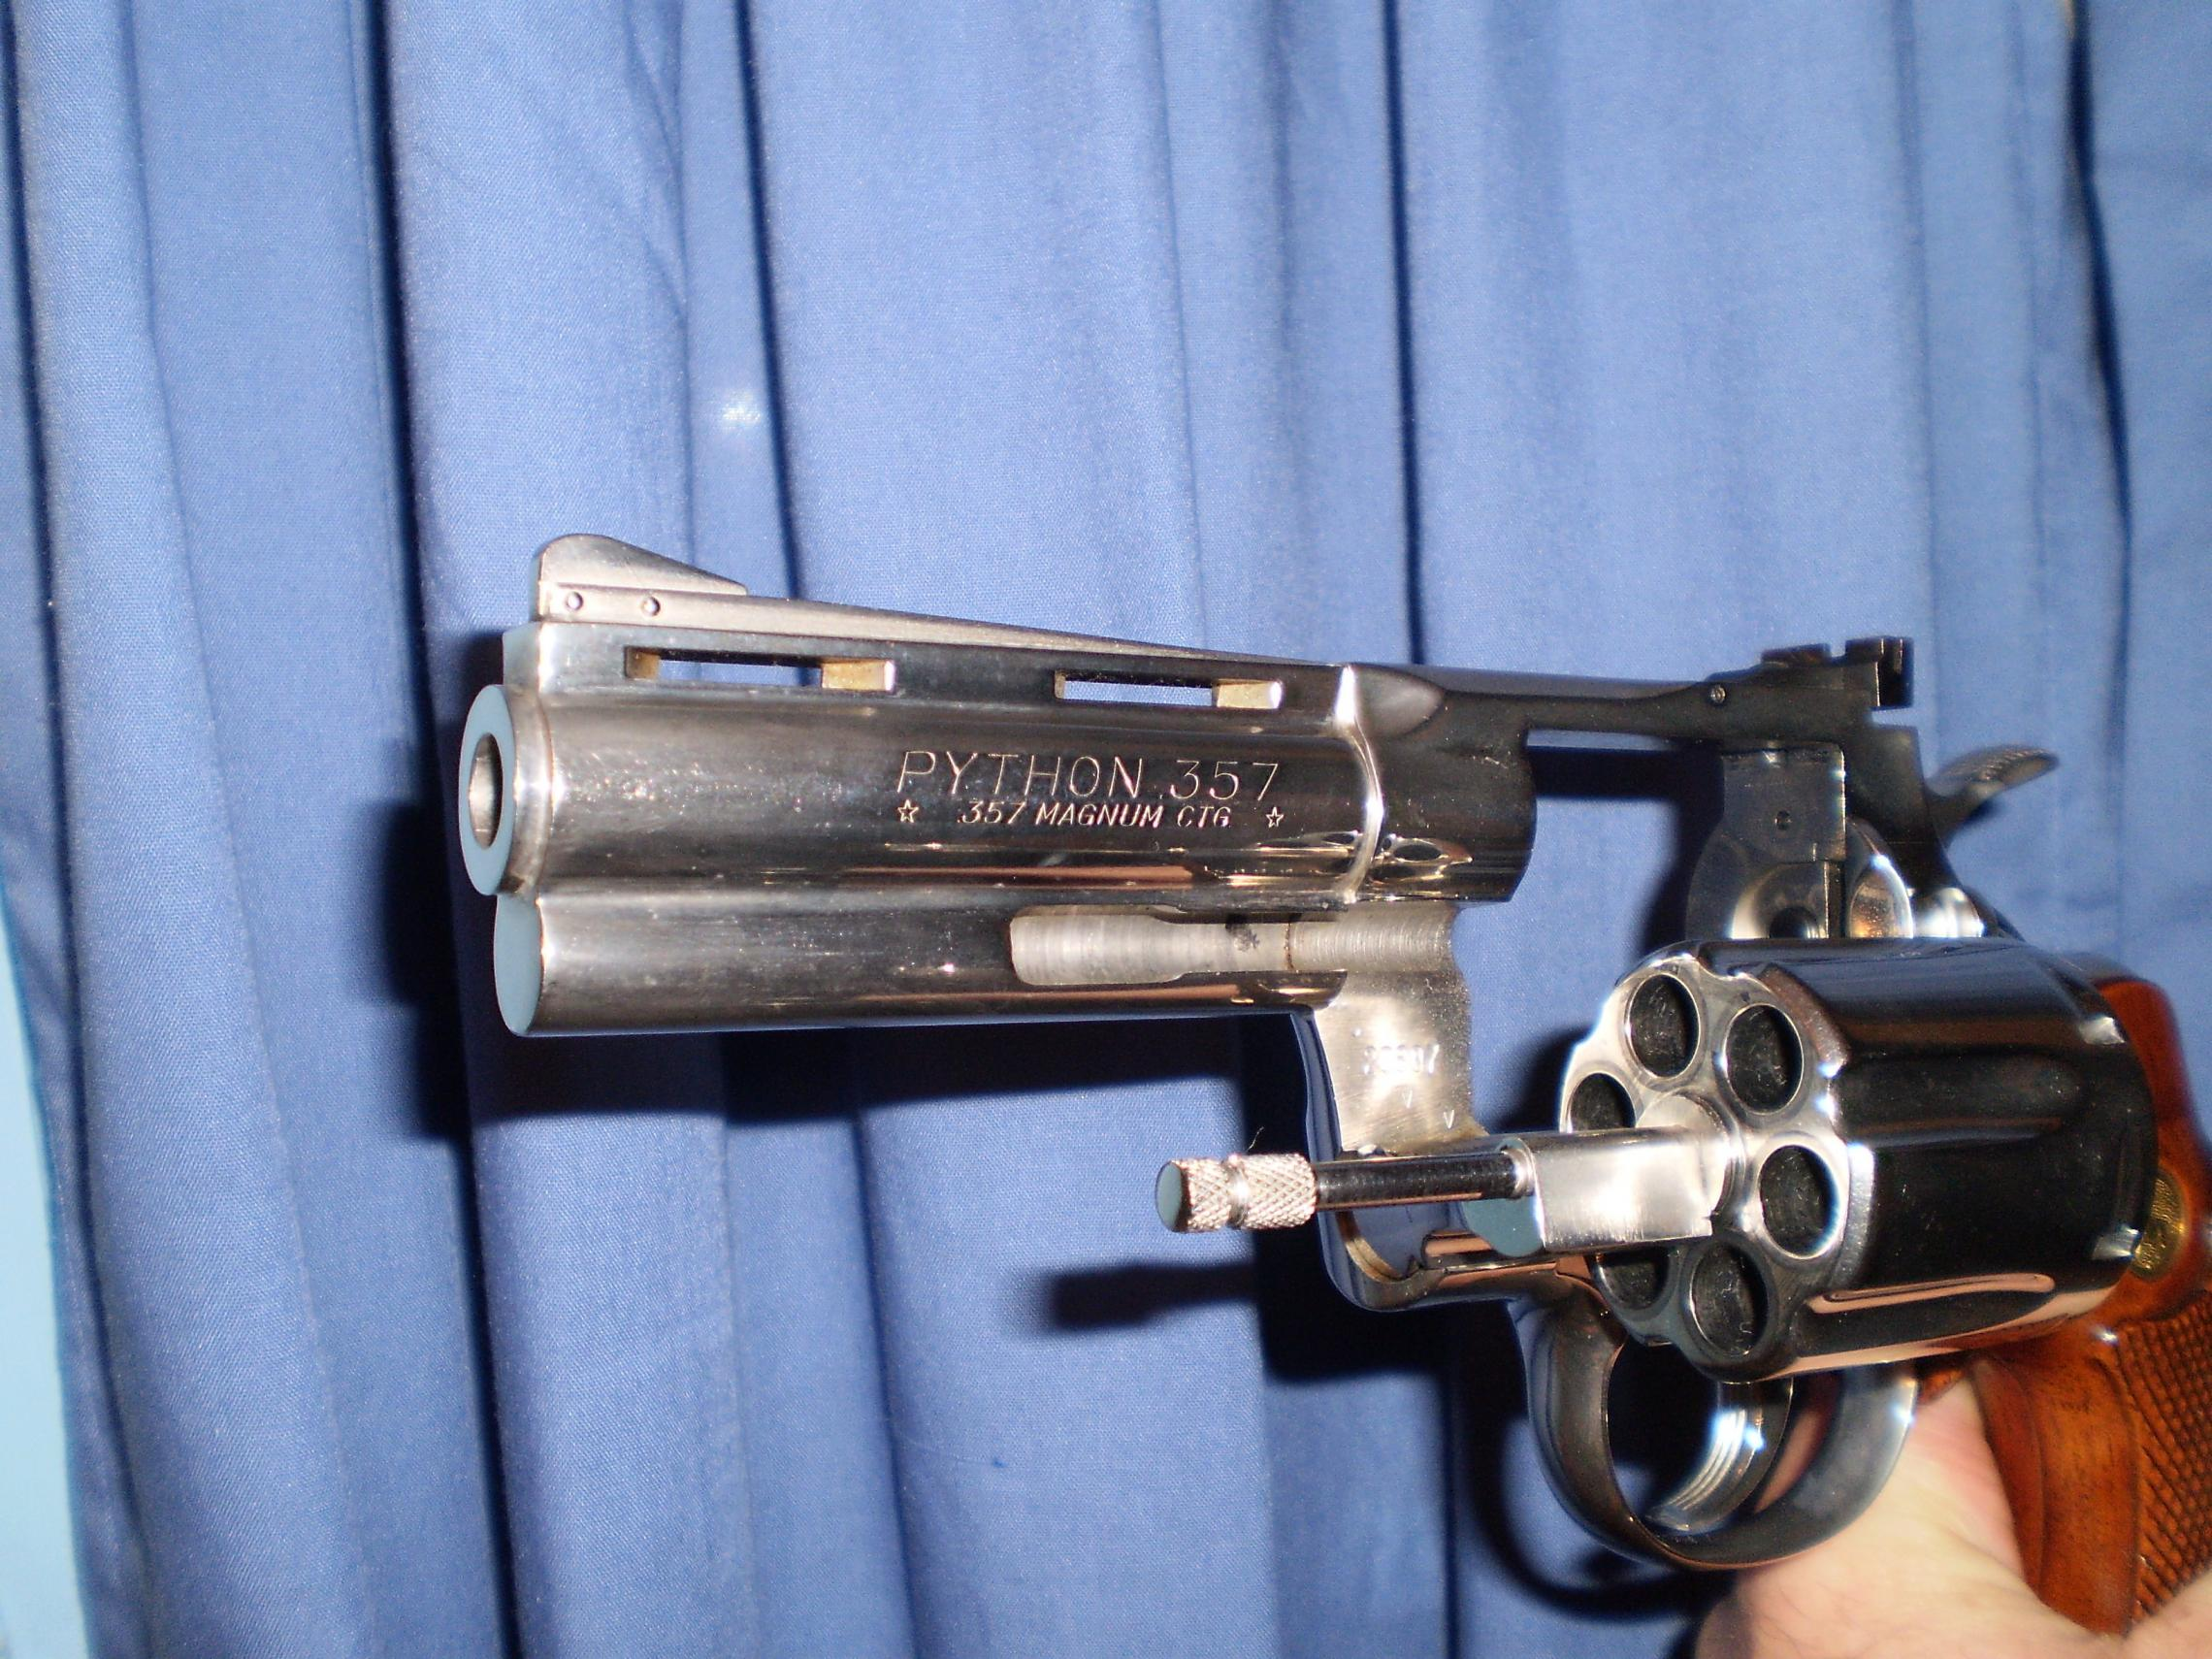 Does Anyone Out There Take Colt Revolvers Seriously?